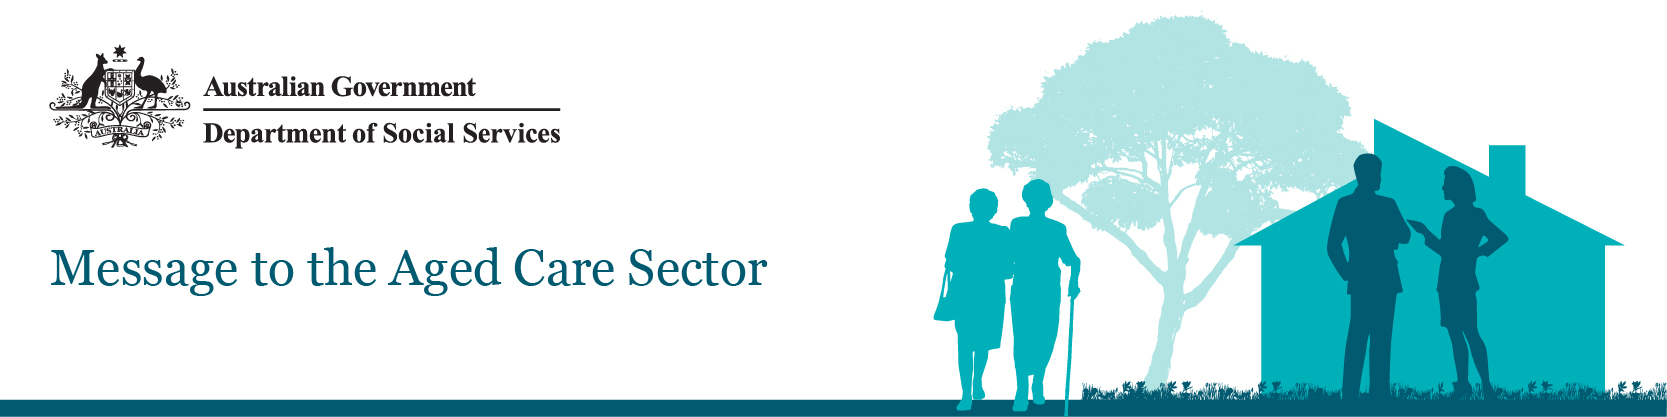 Australian Government Department of Social Services: Message to the Aged Care Sector